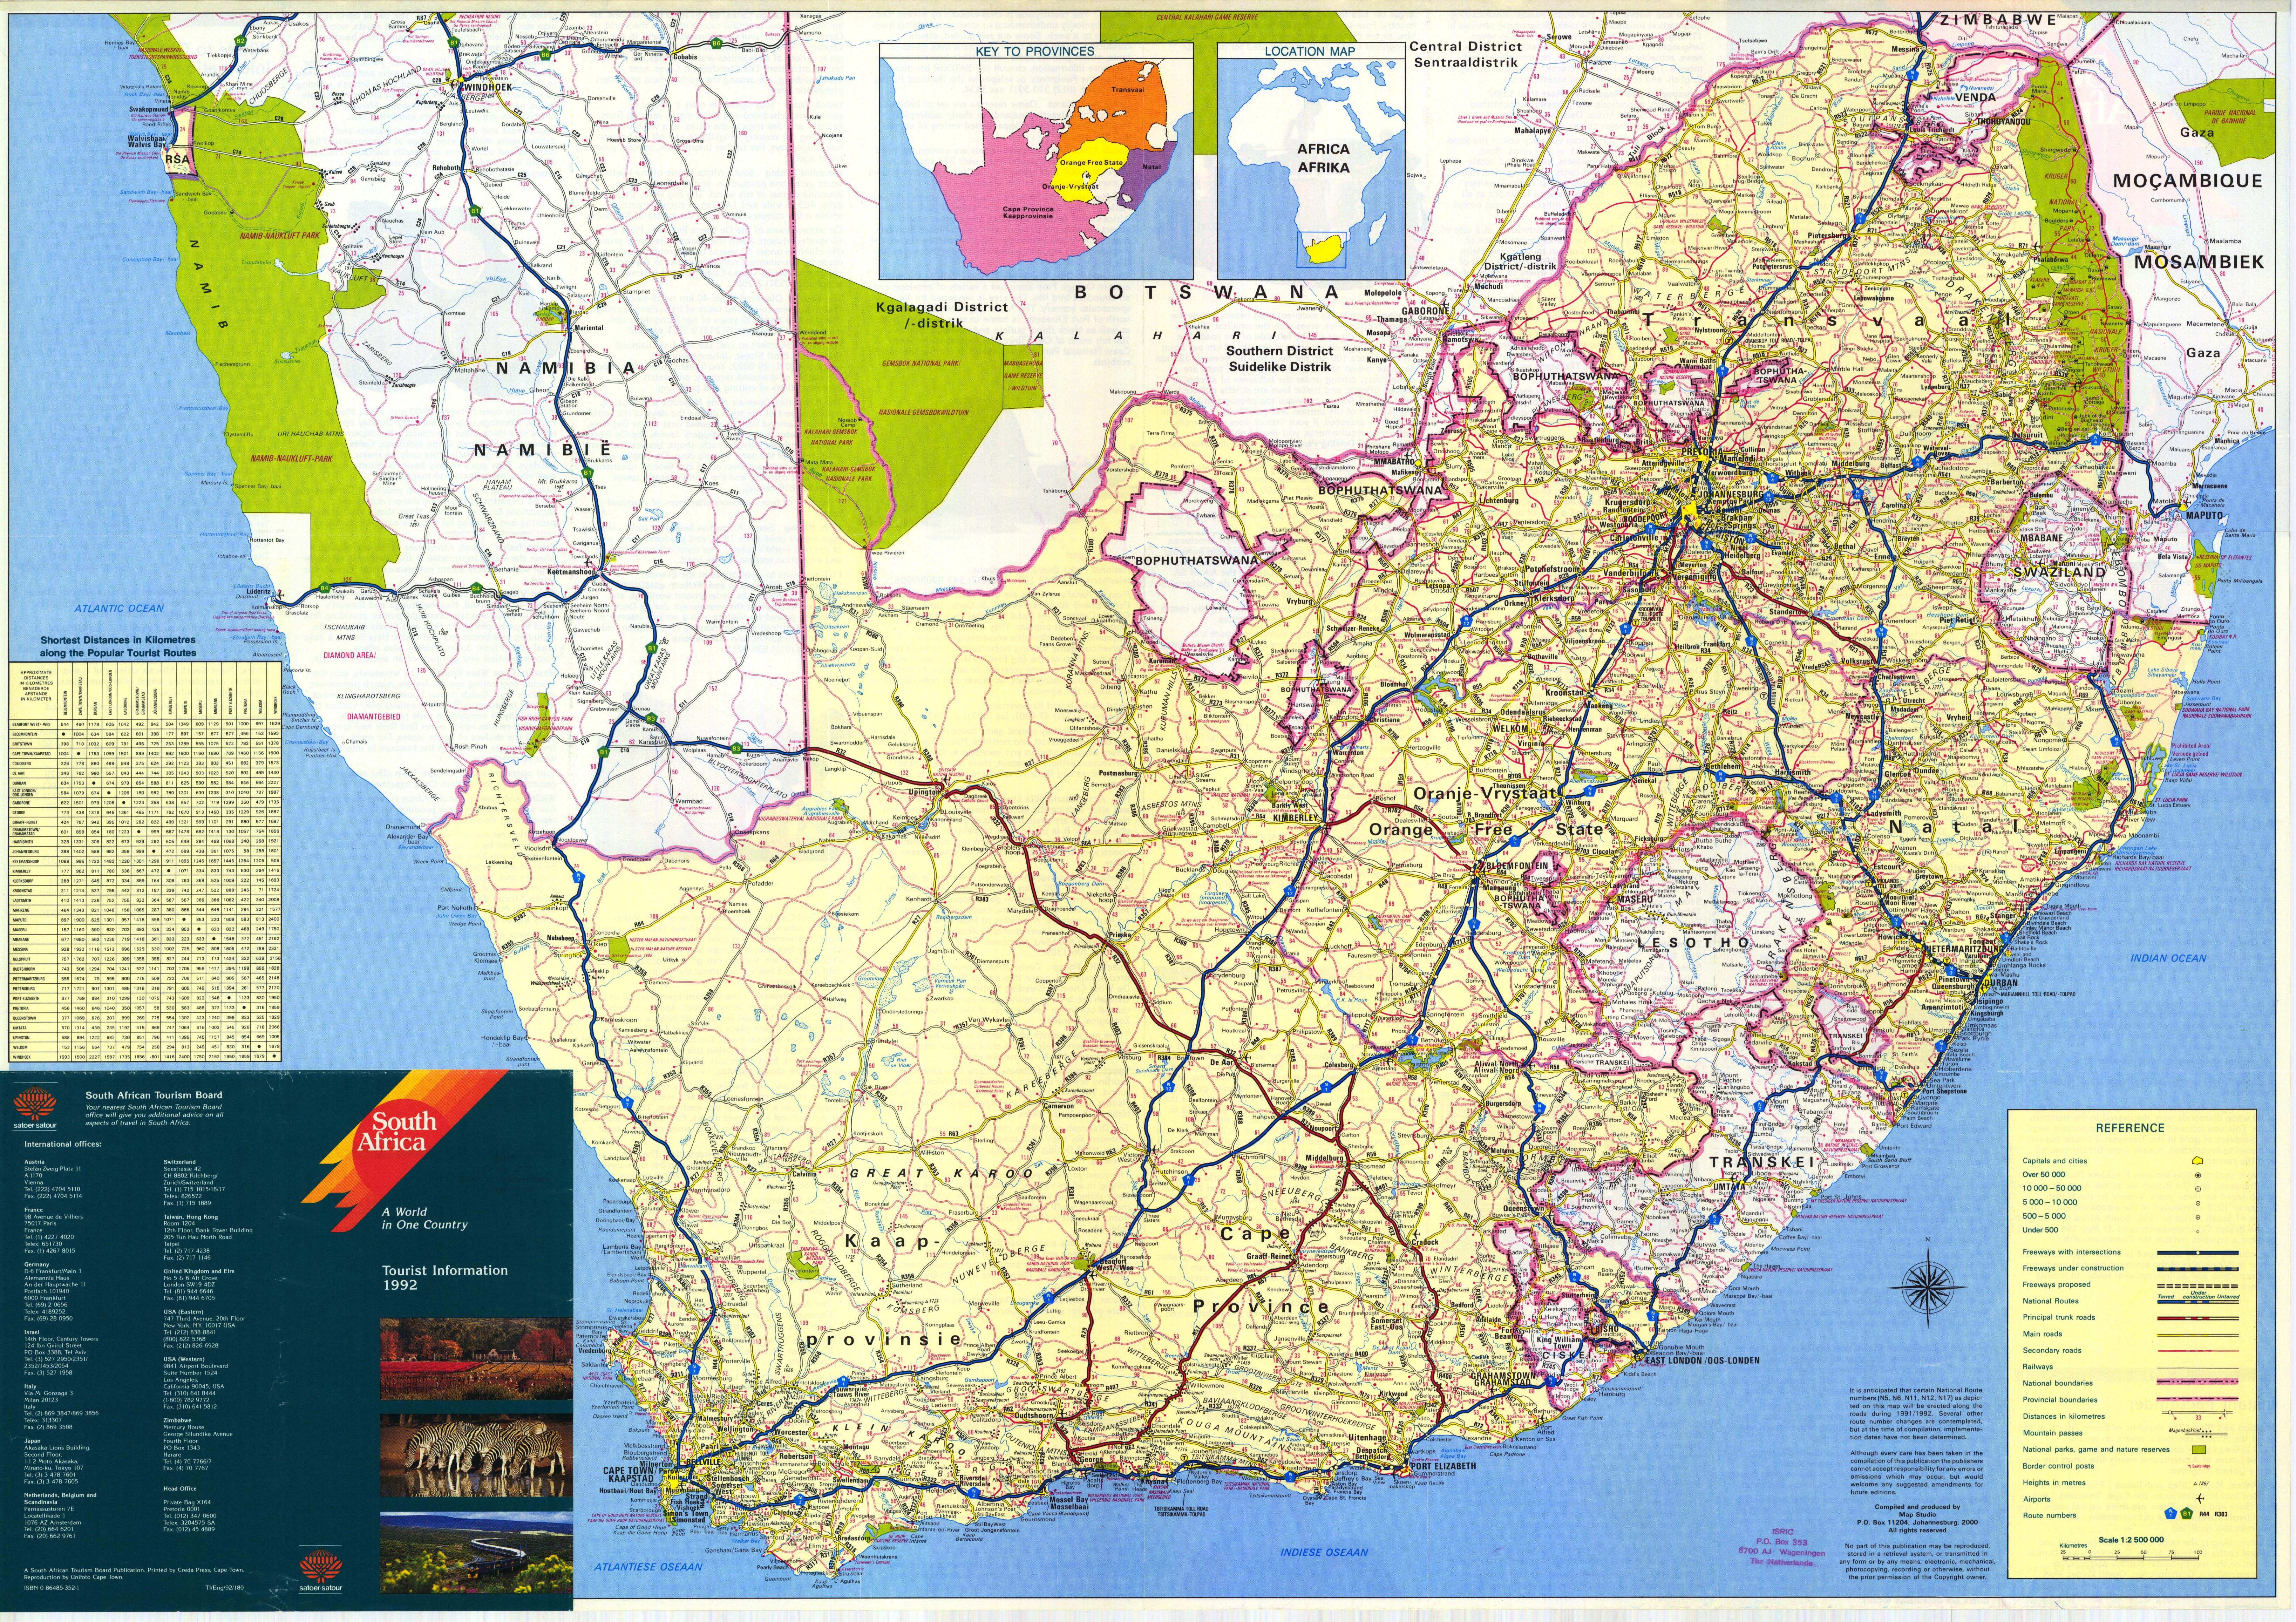 South africa a world in one country tourist information esdac download gumiabroncs Gallery